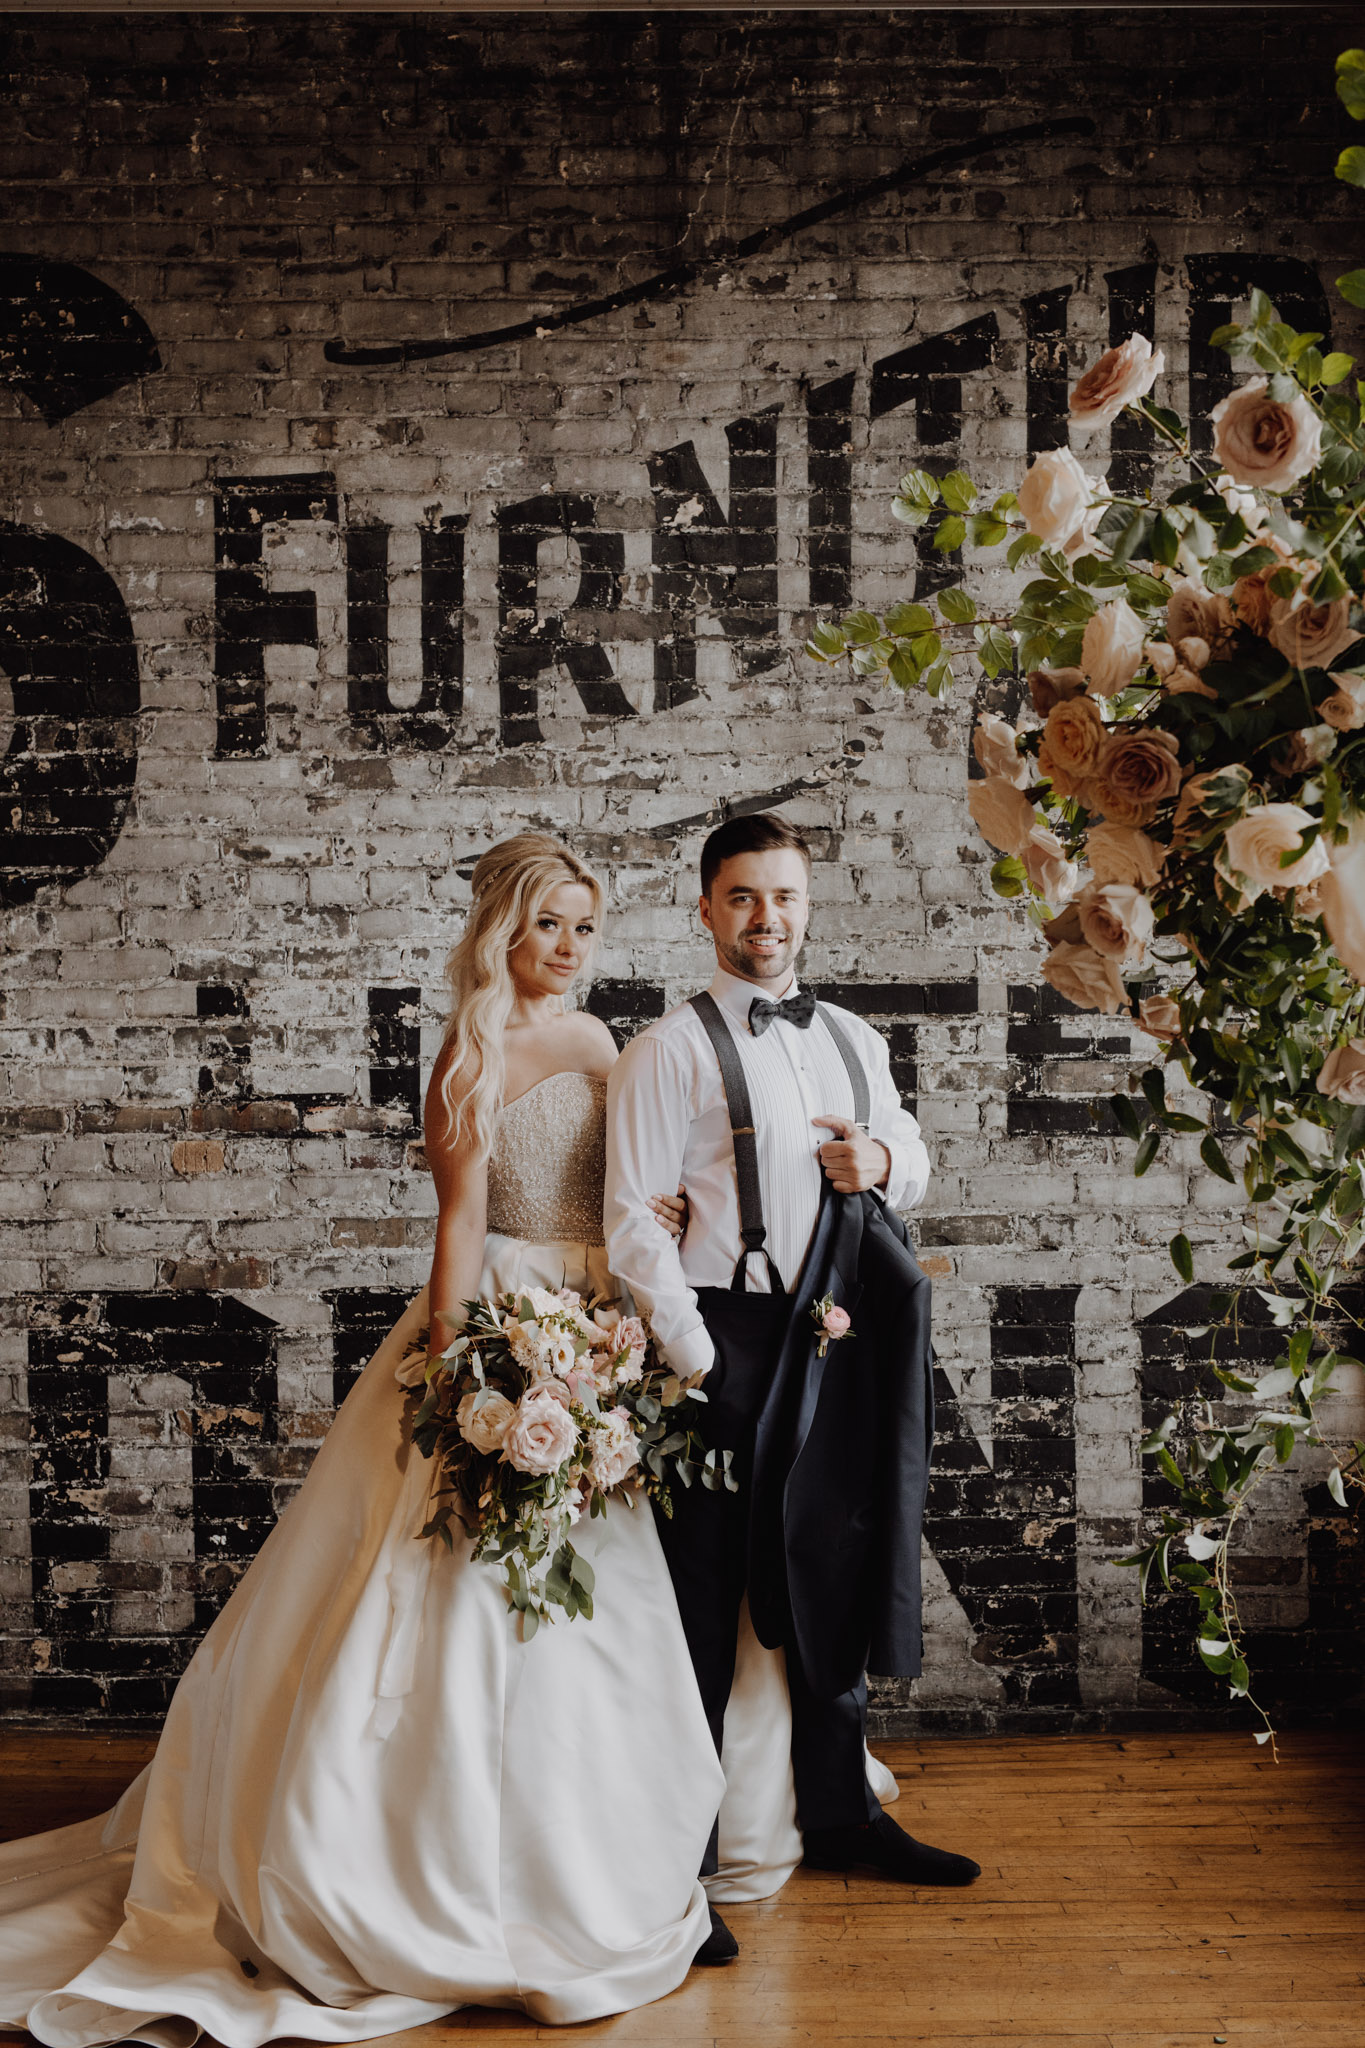 Swanky portraits at The Burroughes Wedding. Love By Lynzie. Wedding Photographer Jennifer See Studios.